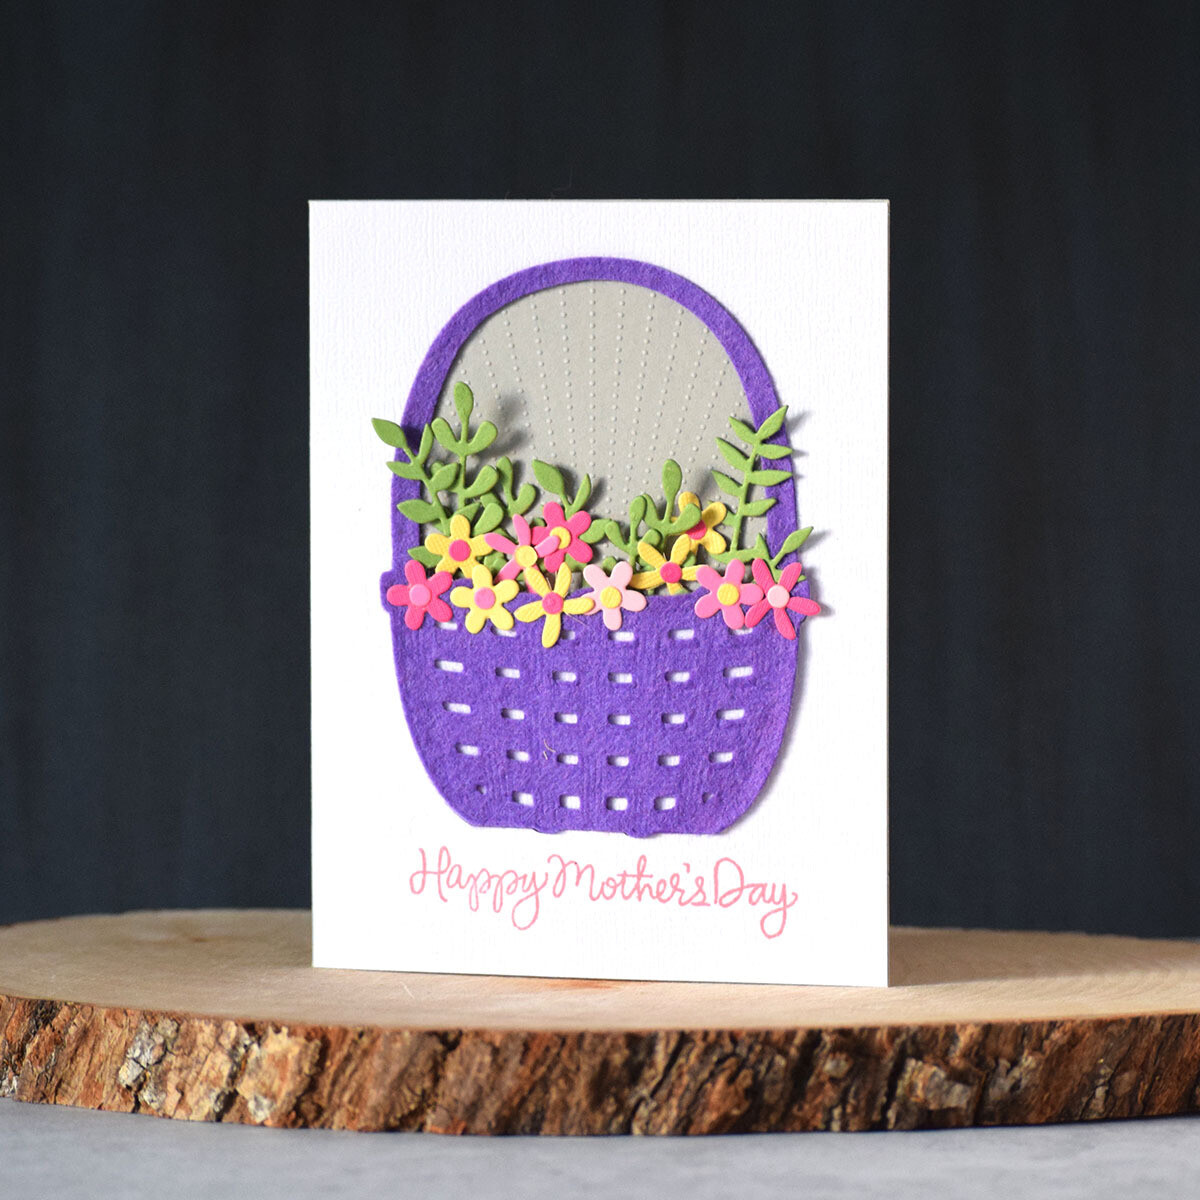 Happy Mother's Day card with a felt basket full of flowers